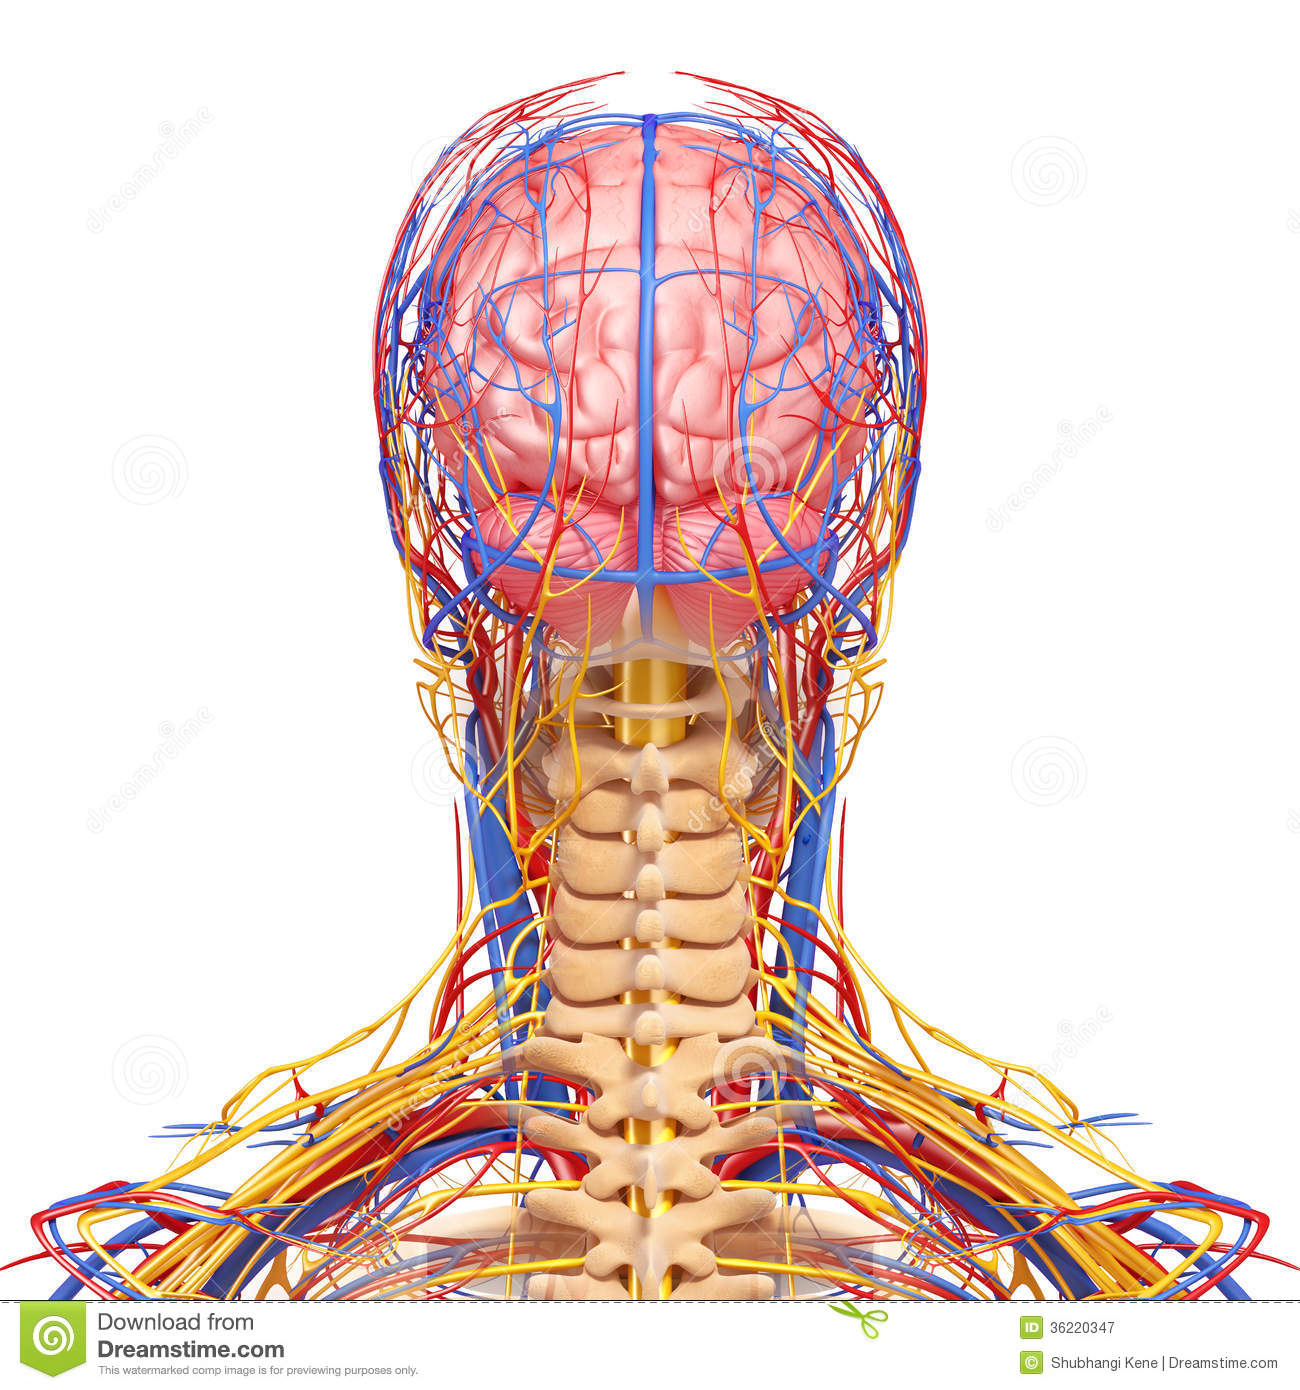 hight resolution of 3d art illustration of circulatory and nervous system of male head